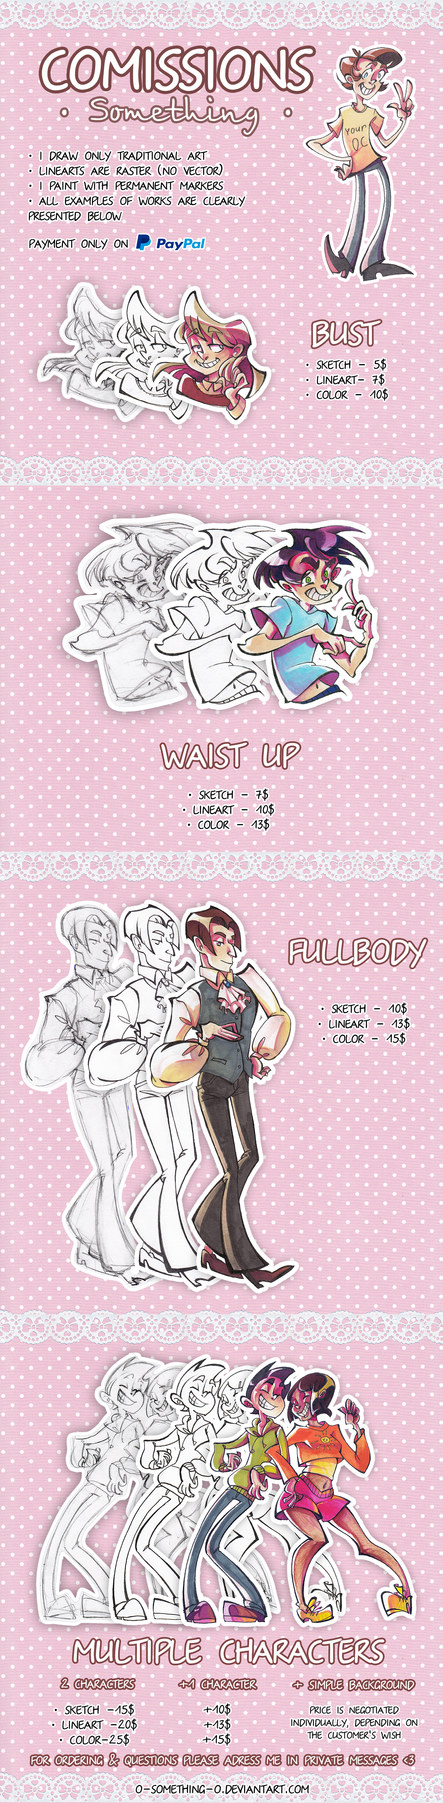 Commissions Info [Paypal] by Selebushka